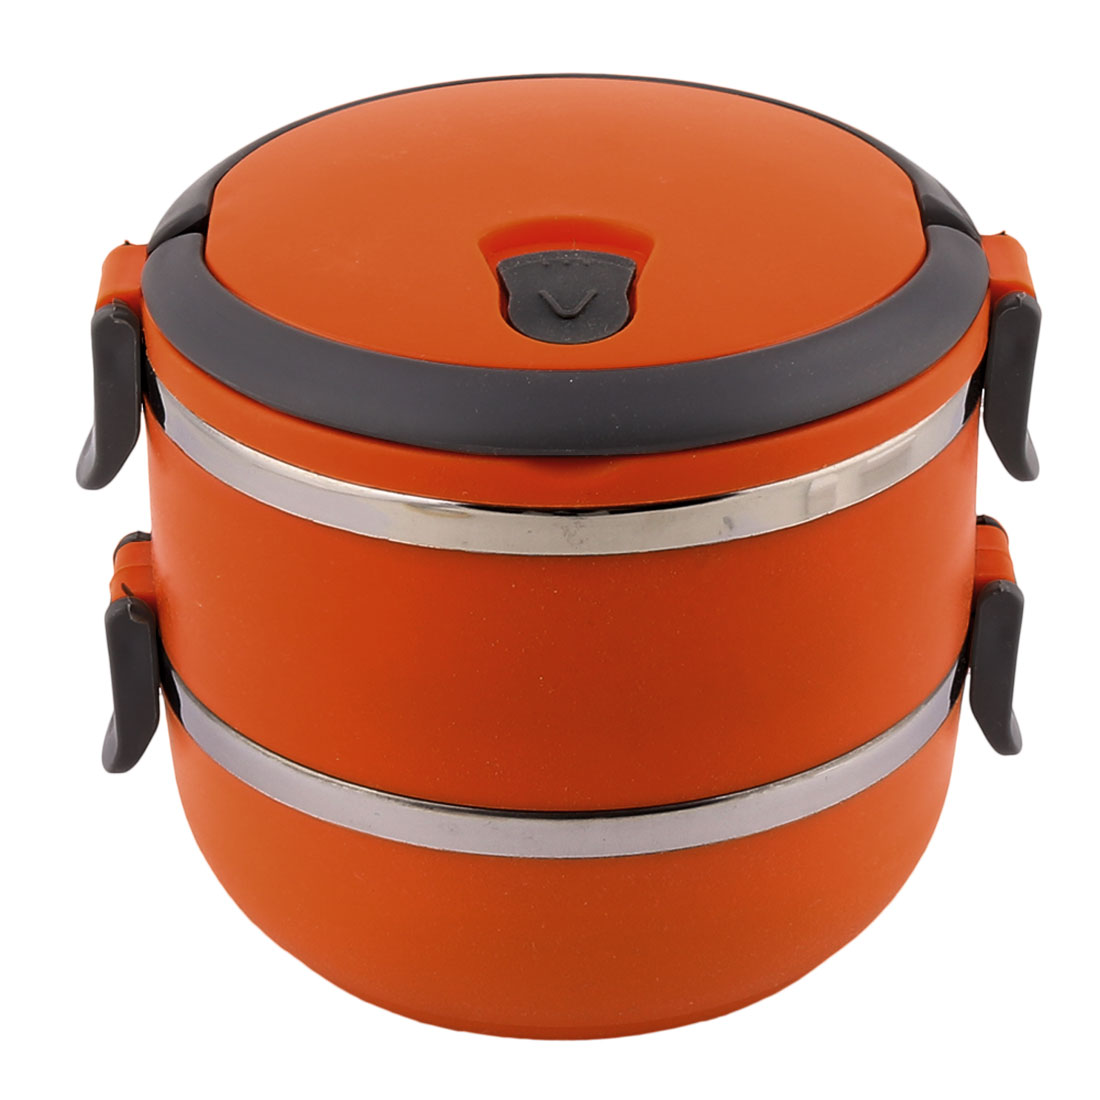 Unique Bargains Home School Office Orange Plastic Handle Stainless Steel Double Layers Lunch Box Food Container